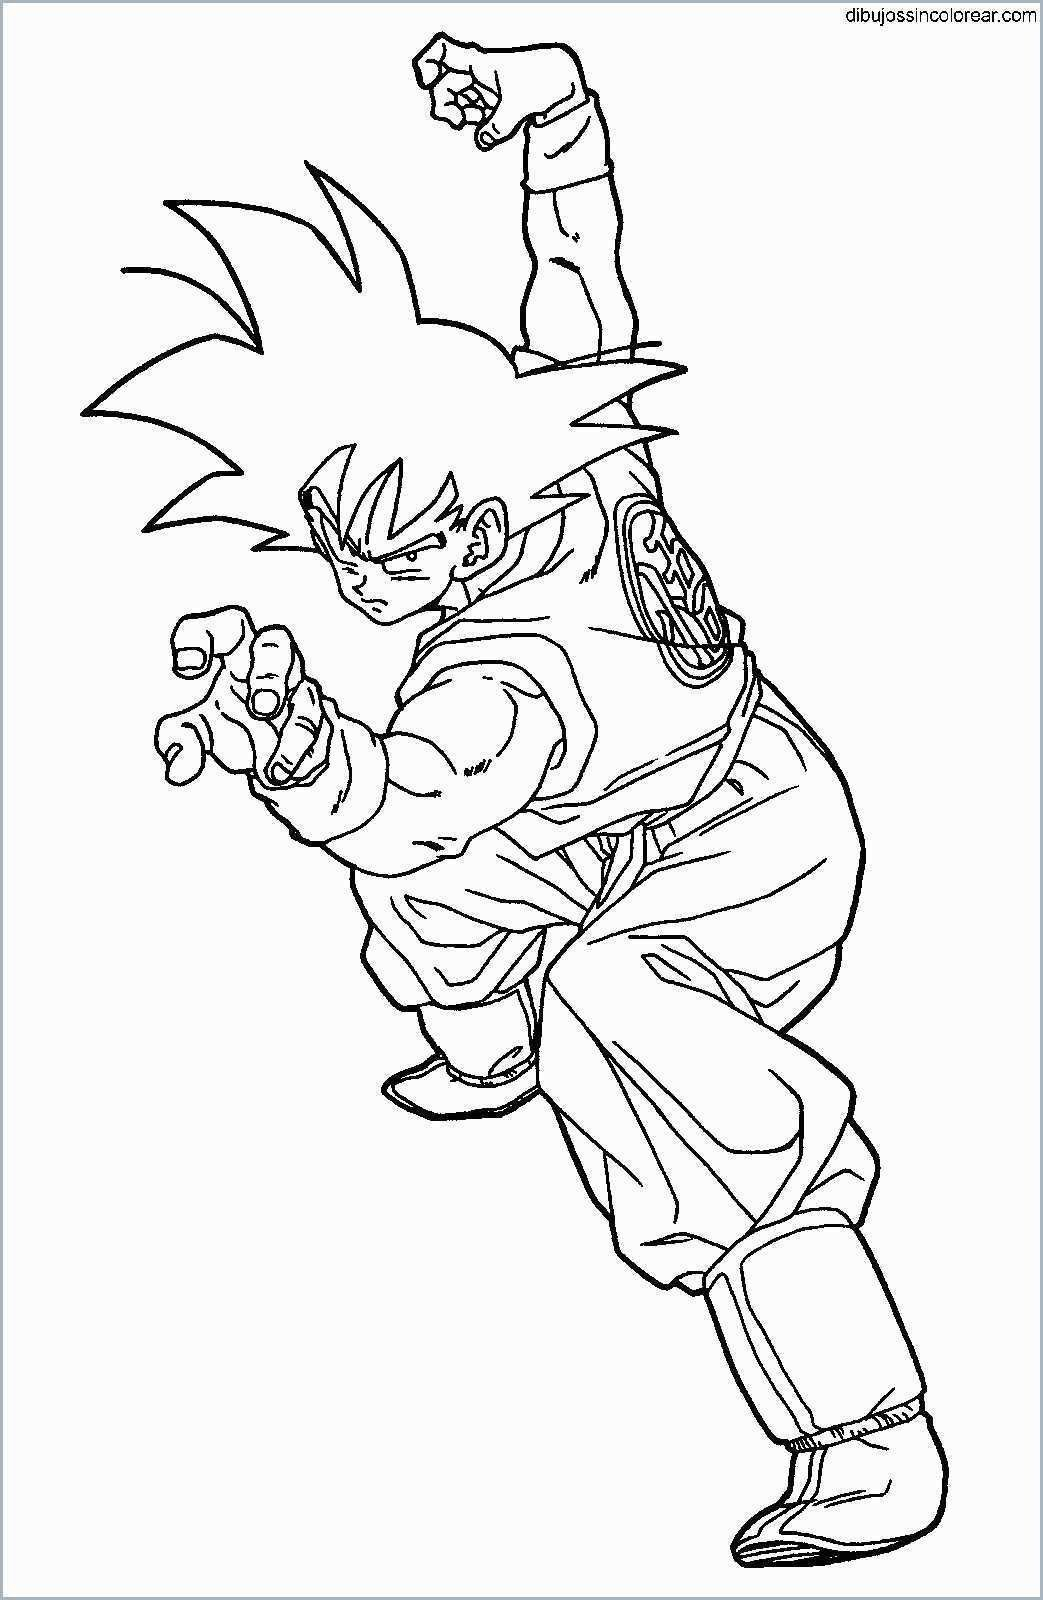 Chance The Rapper Coloring Book Download Unique A 10 Coloring Book Chance The Rapper Free Viny In 2020 Dragon Coloring Page Power Rangers Coloring Pages Coloring Pages